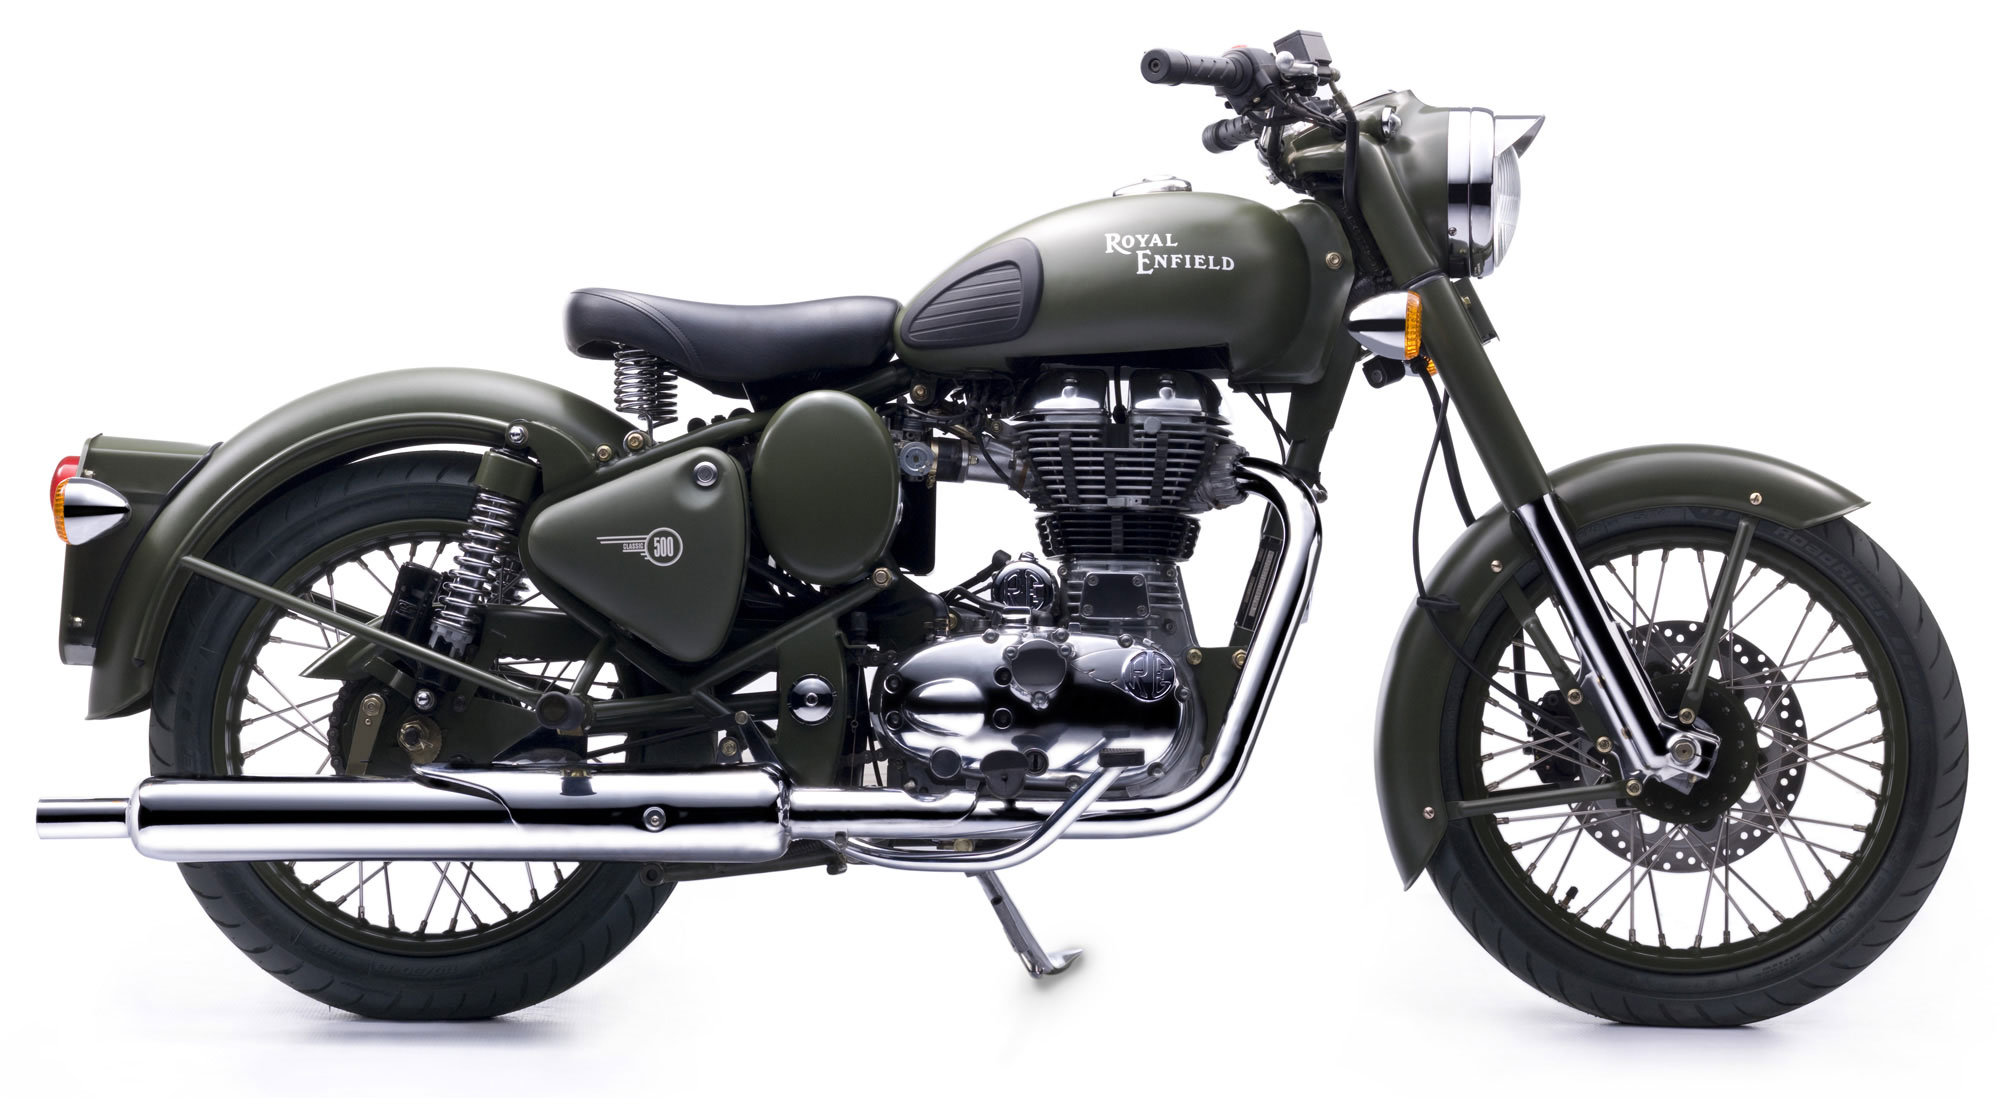 Royal Enfield Bullet 350 Classic 2009 images #123515